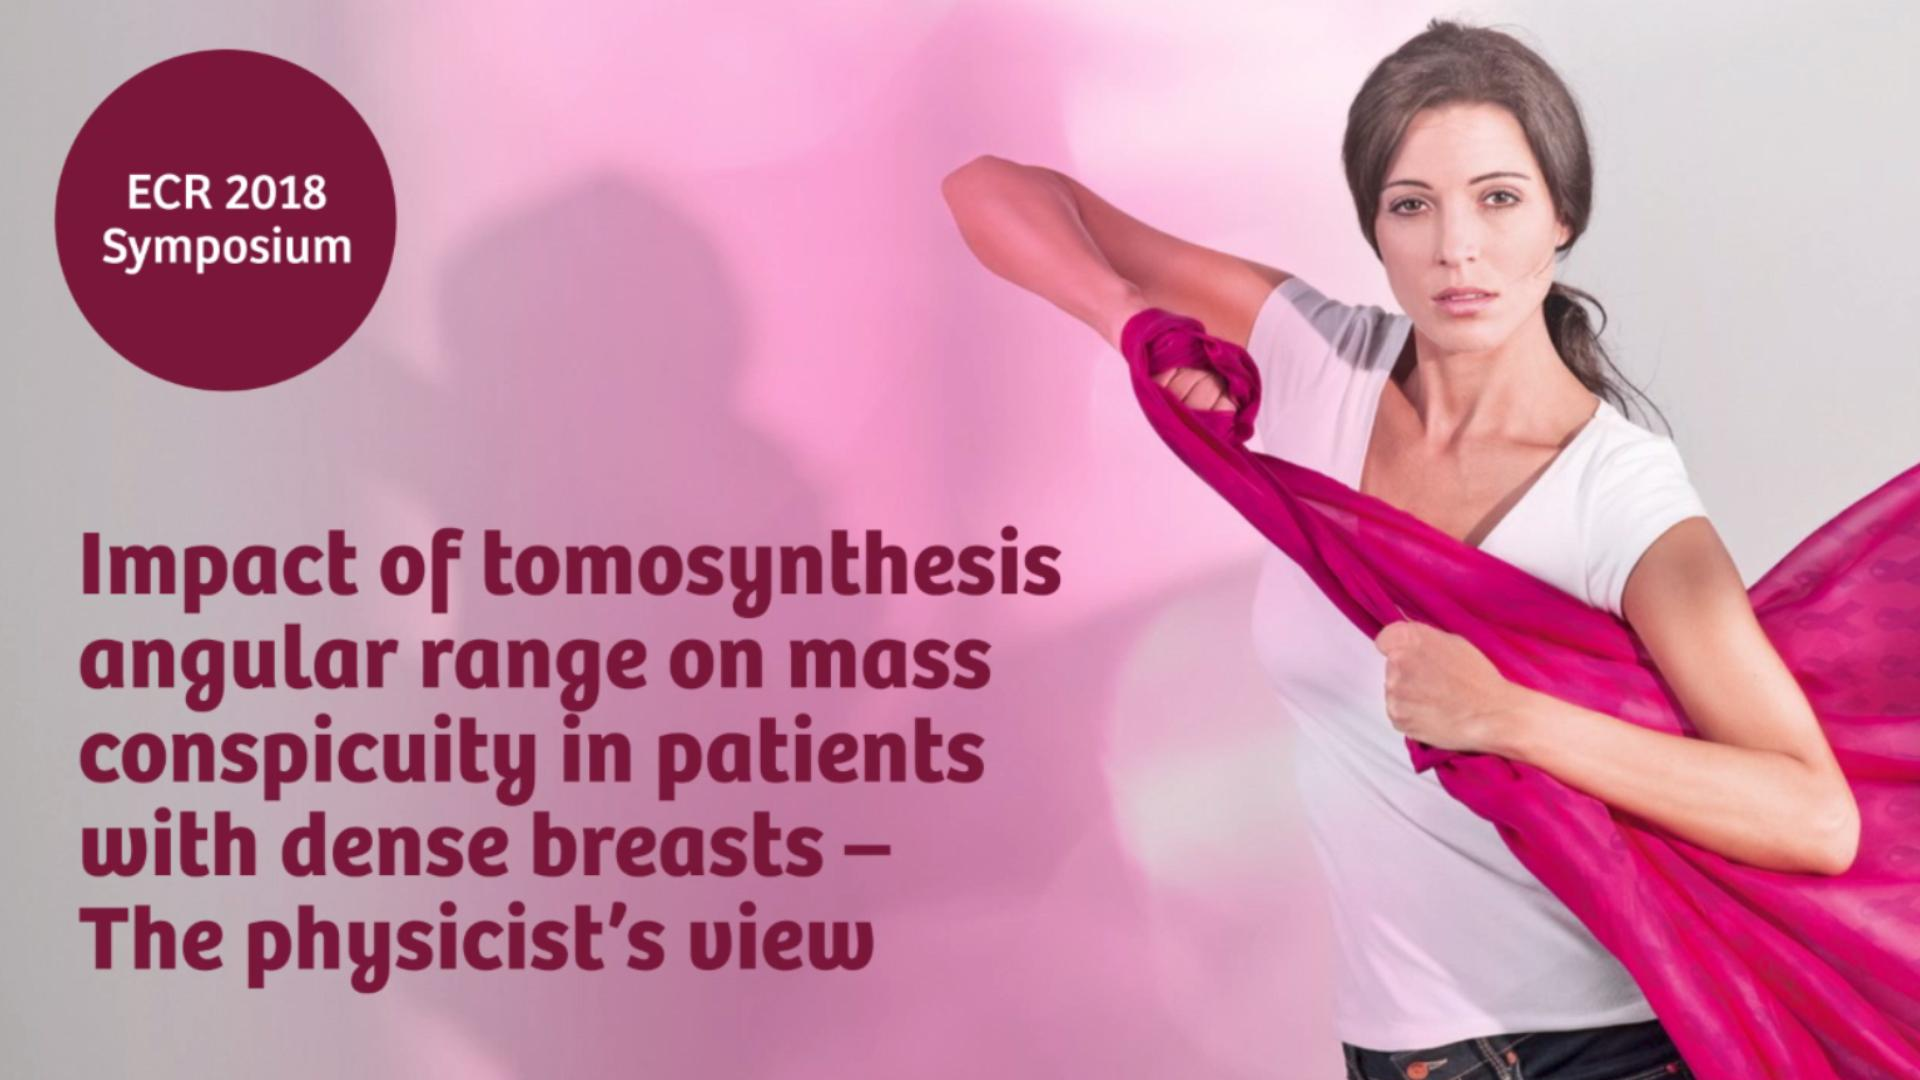 Impact of tomosynthesis angular range on mass conspicuity in patients with dense breasts - The physicist's view